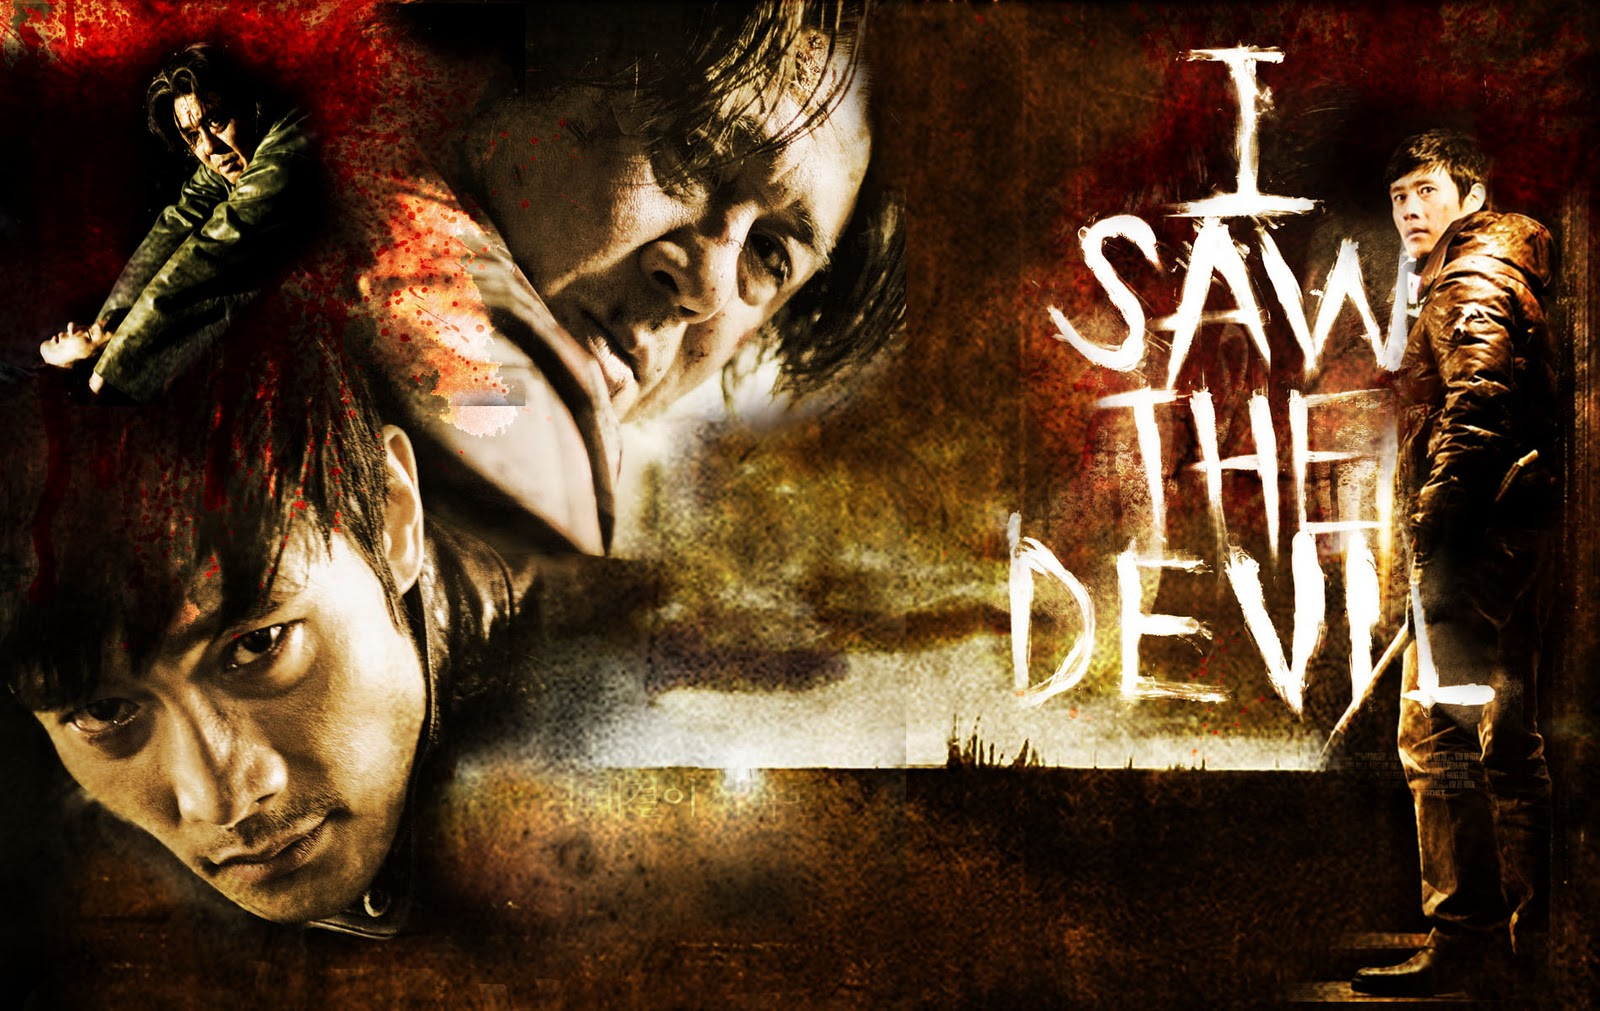 http://4.bp.blogspot.com/-G4N6ODc8ulU/TxypPE9pF5I/AAAAAAAABpQ/wrua4Ys0cx0/s1600/i_saw_the_devil_wallpaper_by_rodolforever-d38stij.jpg